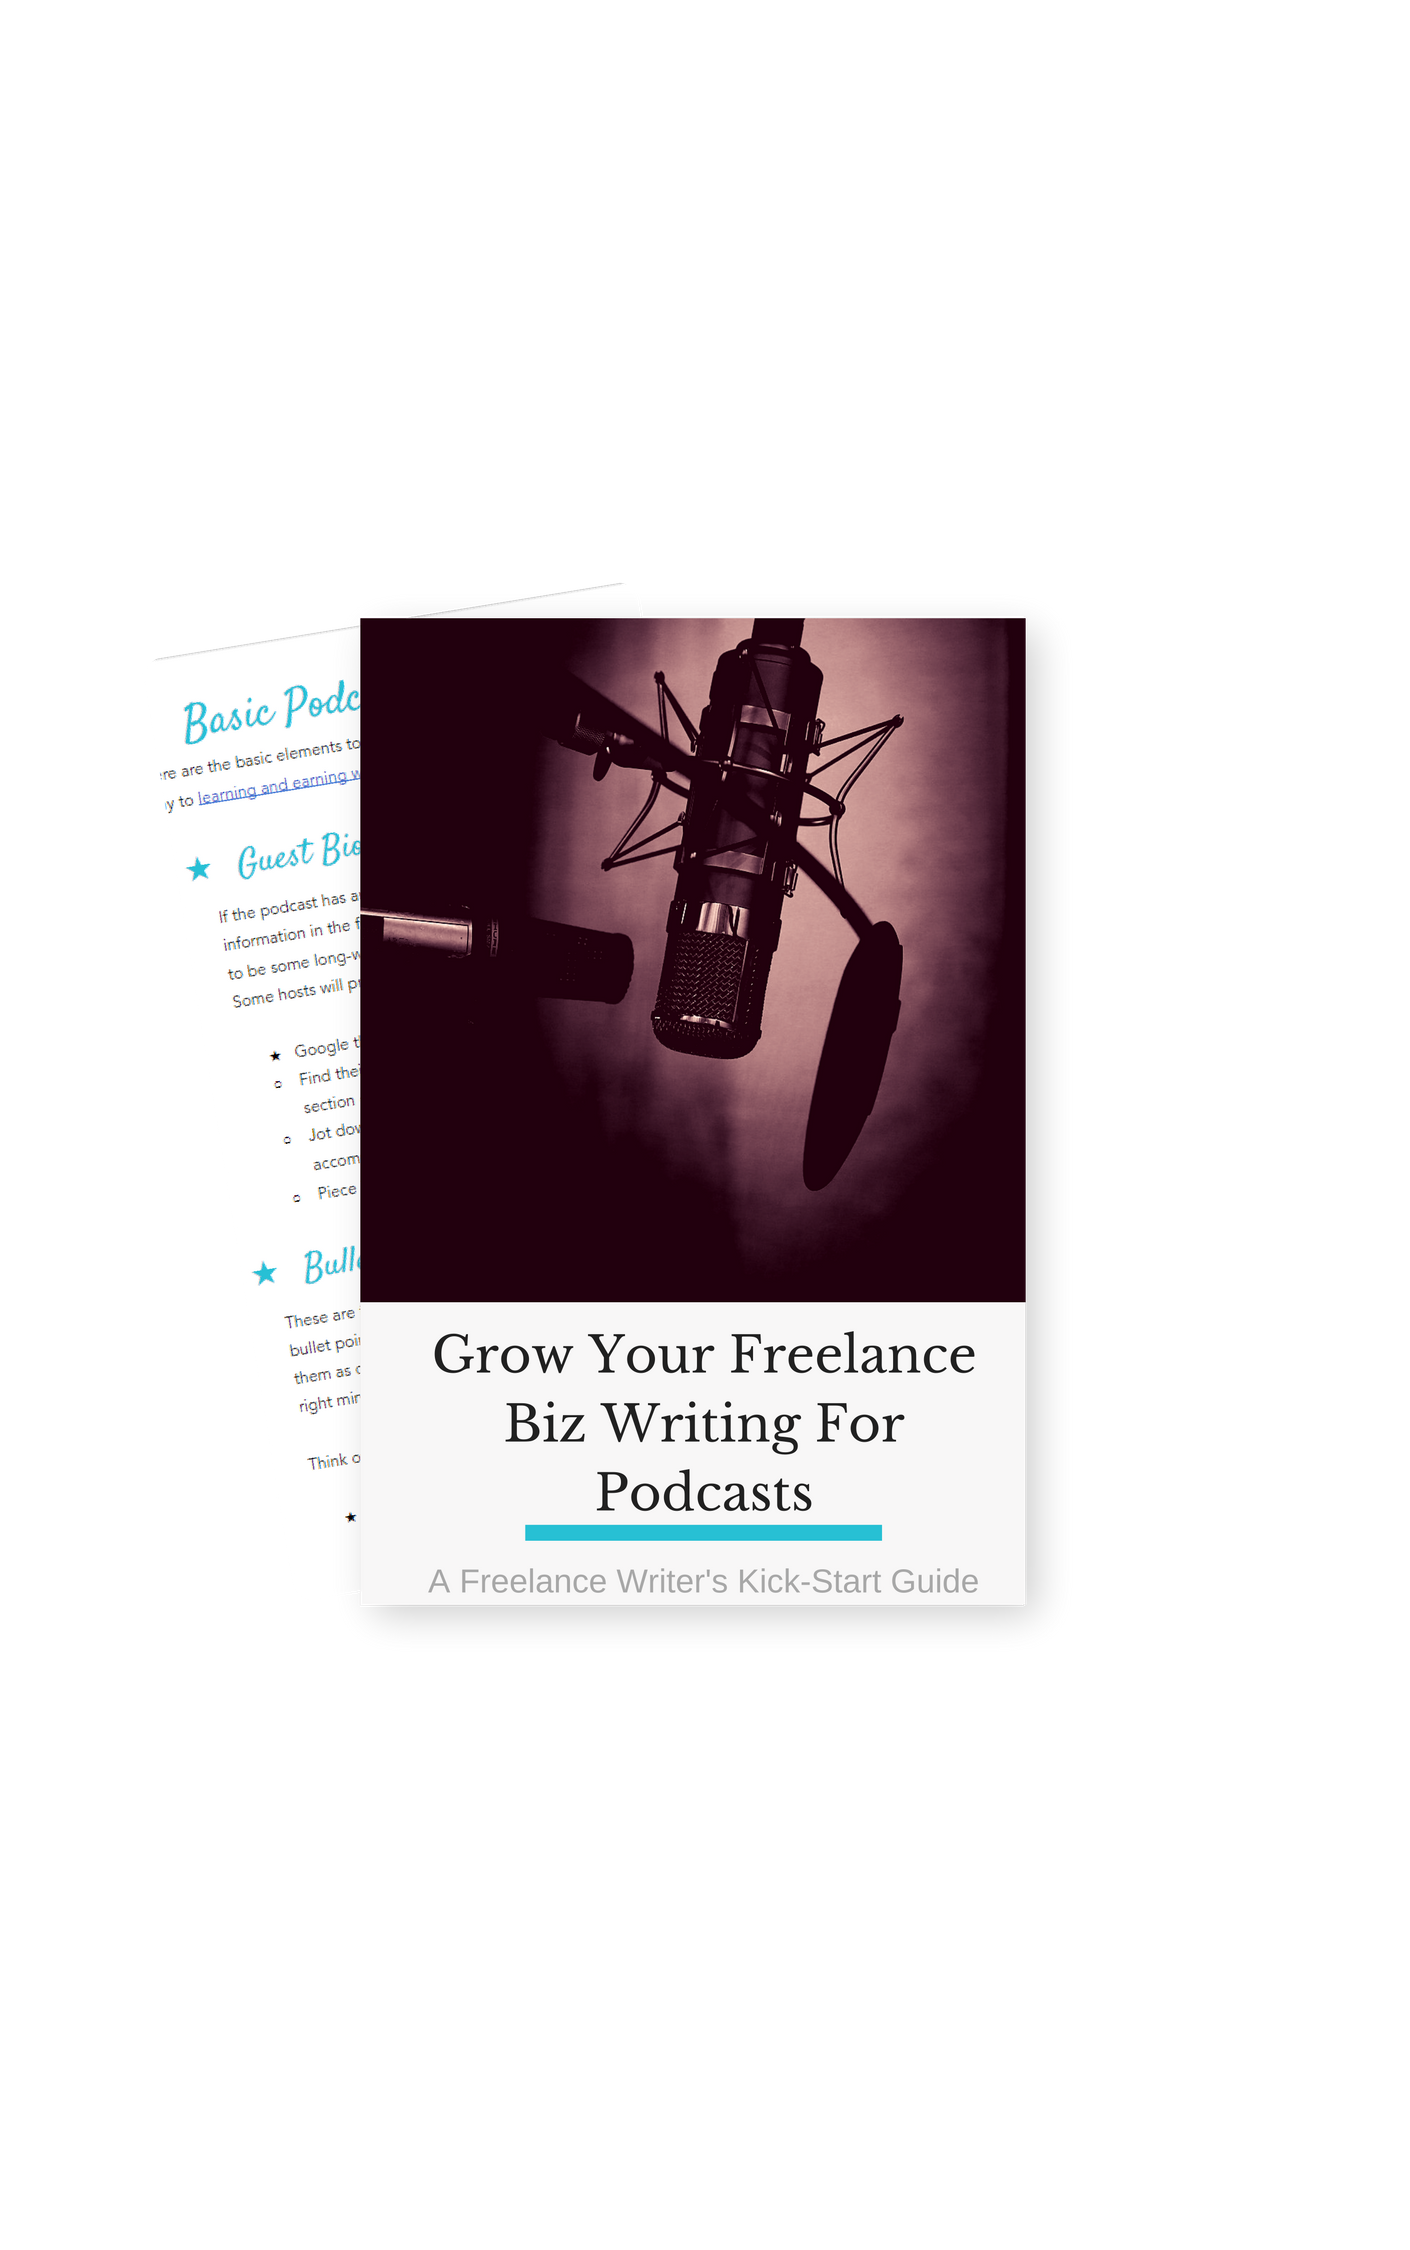 GROW YOUR FREELANCE BIZ WRITING FOR PODCASTS